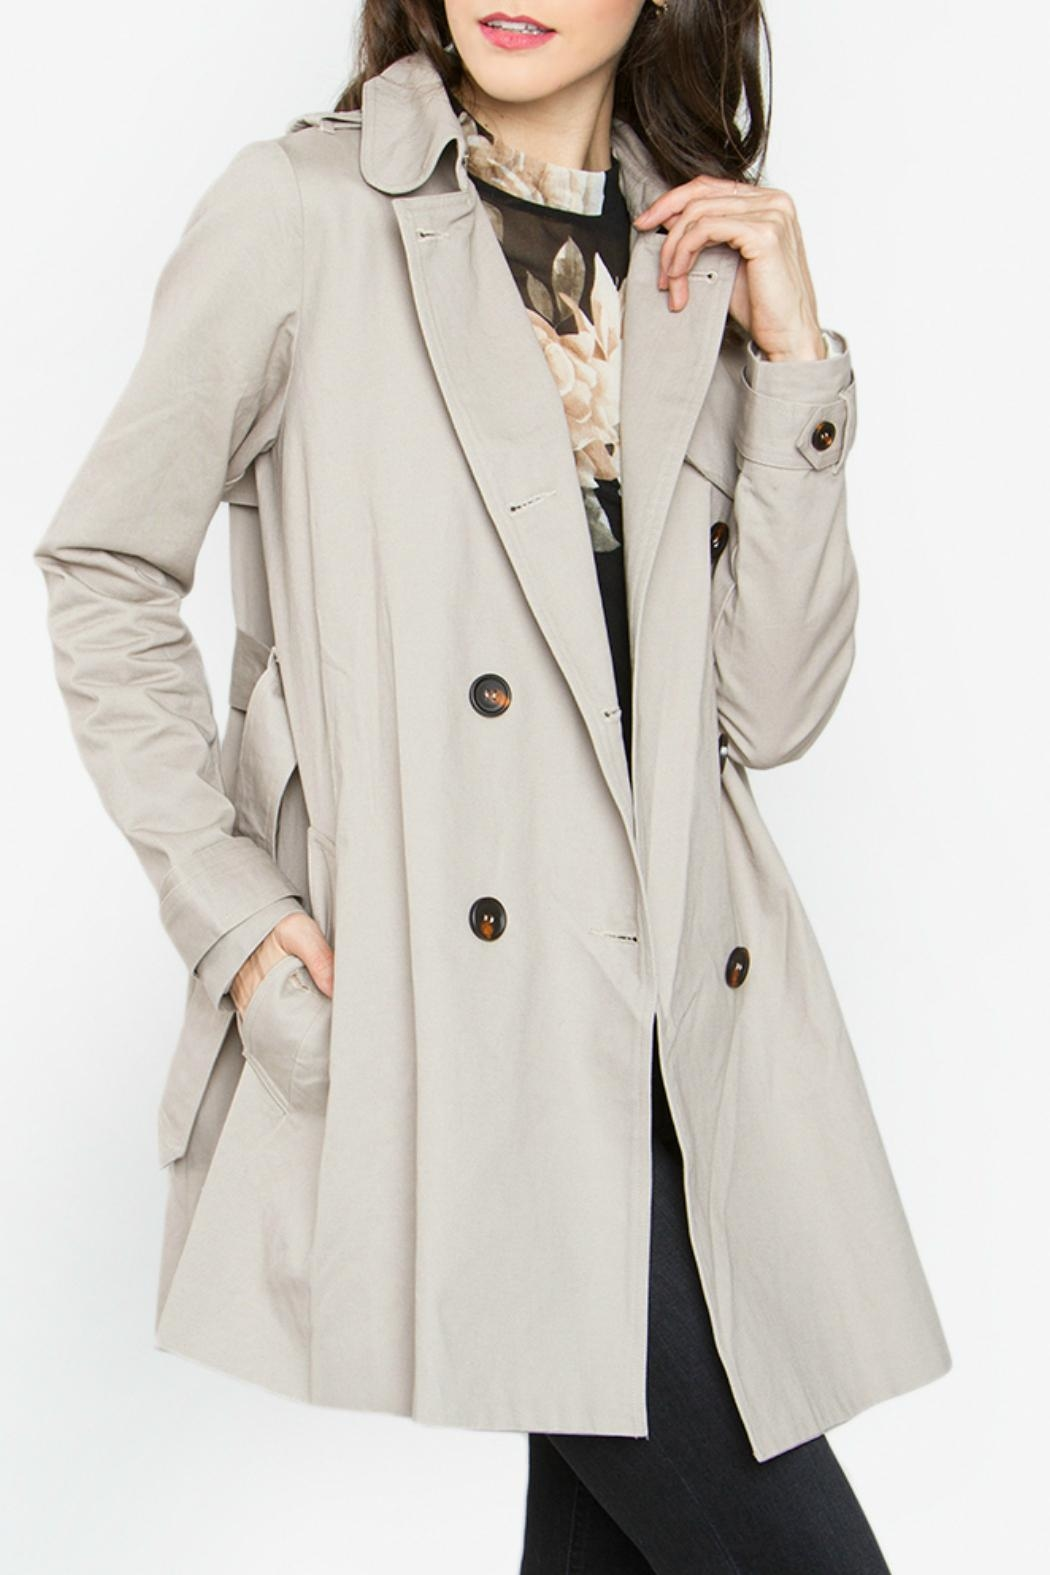 Sugar Lips Beige Trench Coat - Front Full Image